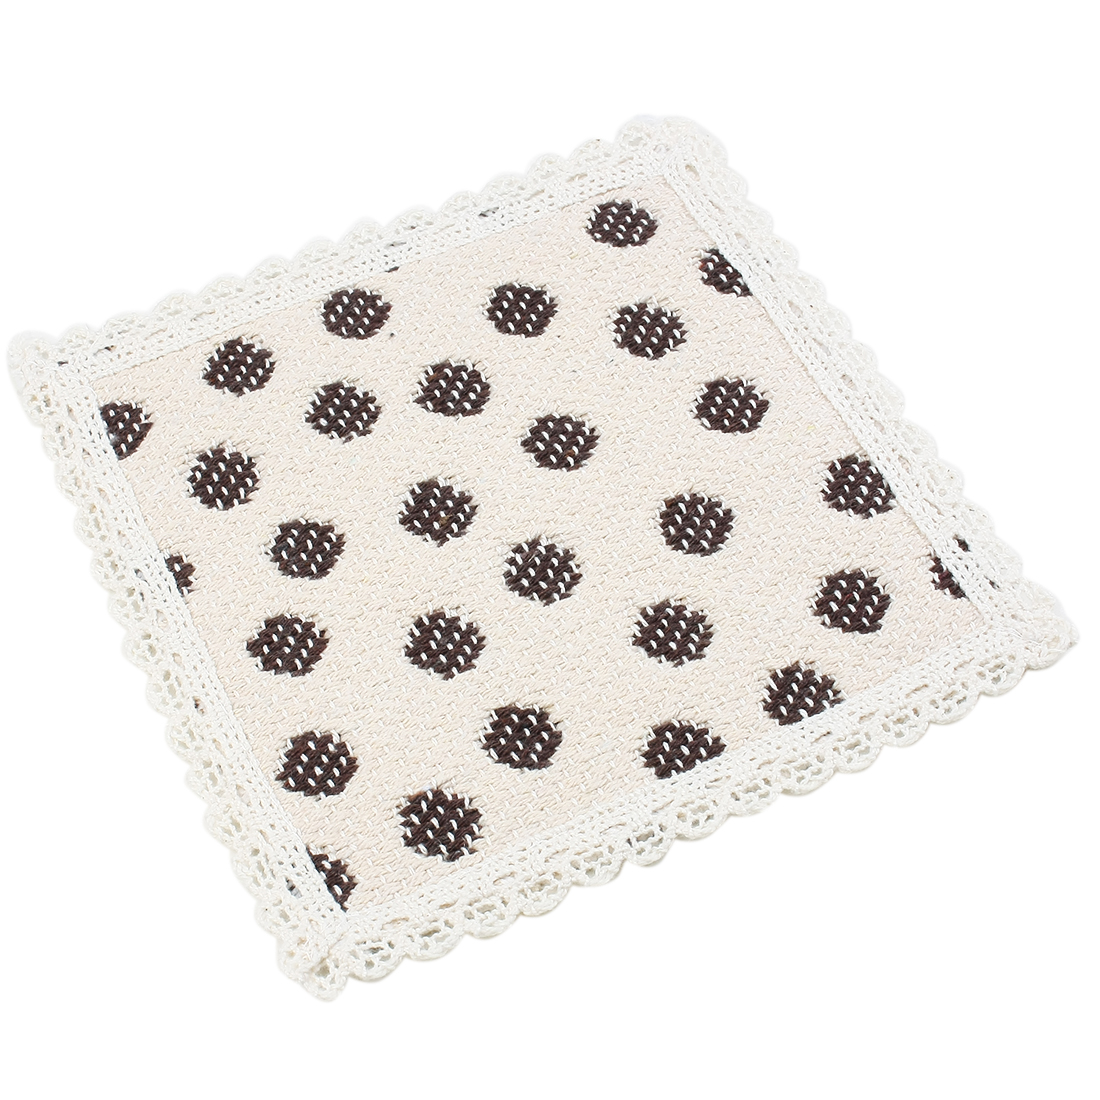 Cotton Strawberry Heat Resistant Table Cup Mat Placemat Coaster